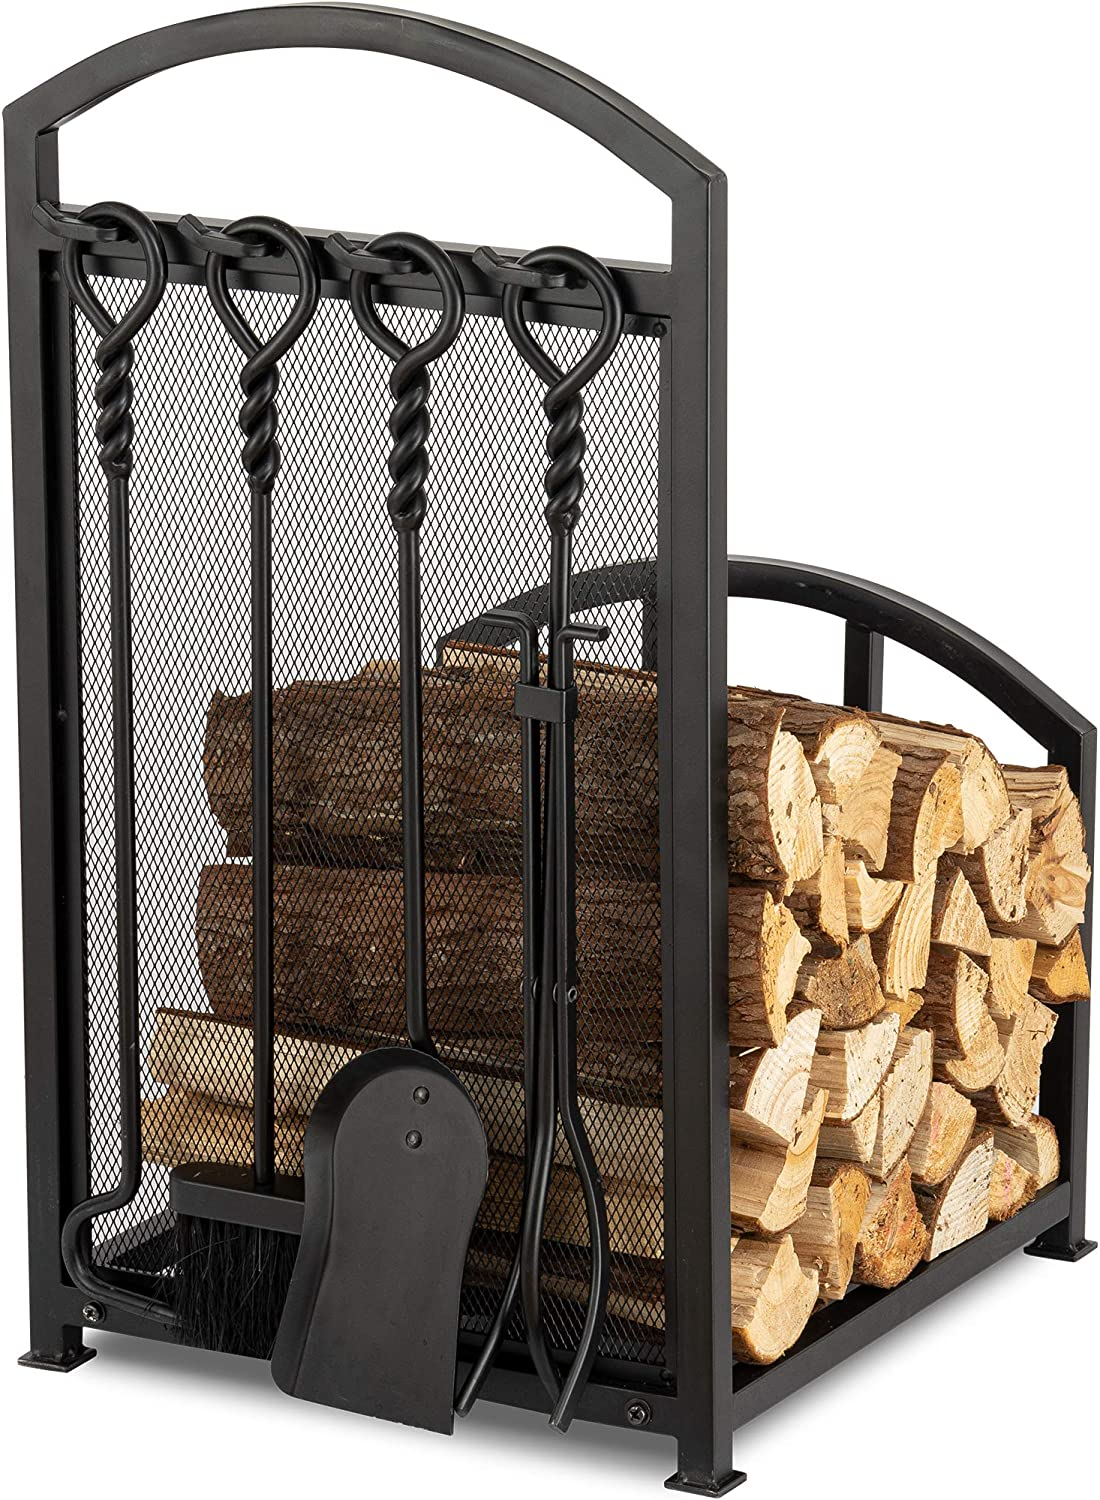 Amagabeli 30.7in Tall Firewood Rack with 4 Tools Indoor Outdoor Firewood Holders Wood Holder Rack Lumber Storage Stacking Heavy Duty Wrought Iron Log Bin Holder Large Tool Set Accessories